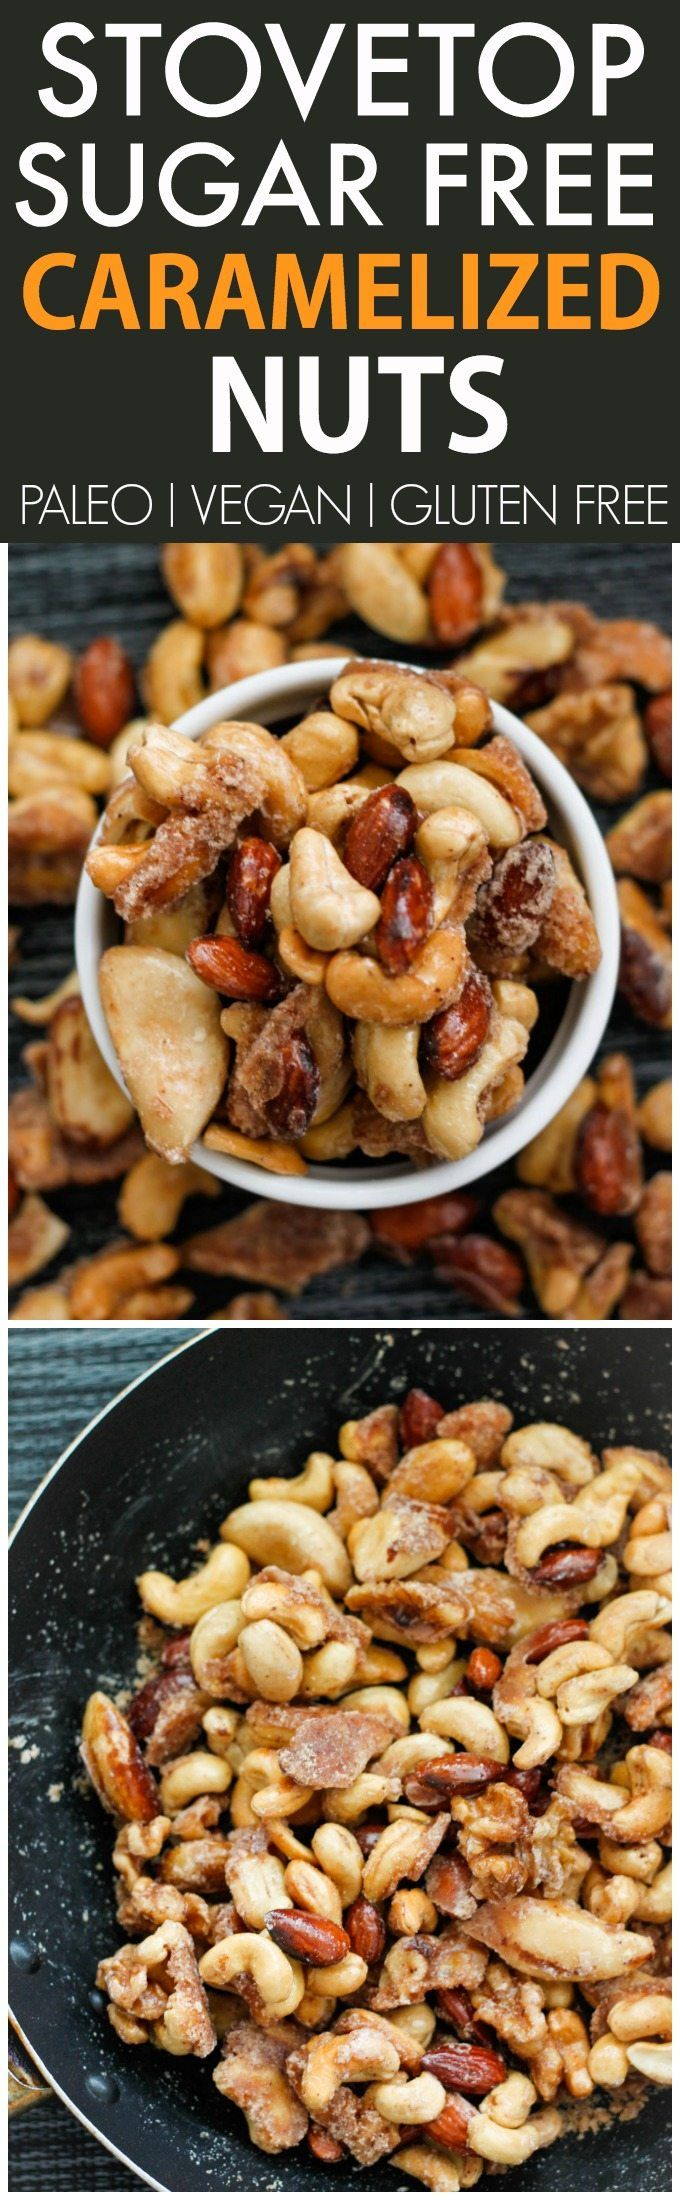 Healthy SUGAR FREE Caramelized Nuts- No oven needed (made stovetop!) and 100% sugar free- A guilt free snack, gift or dessert! {vegan, gluten free, paleo recipe}- thebigmansworld.com